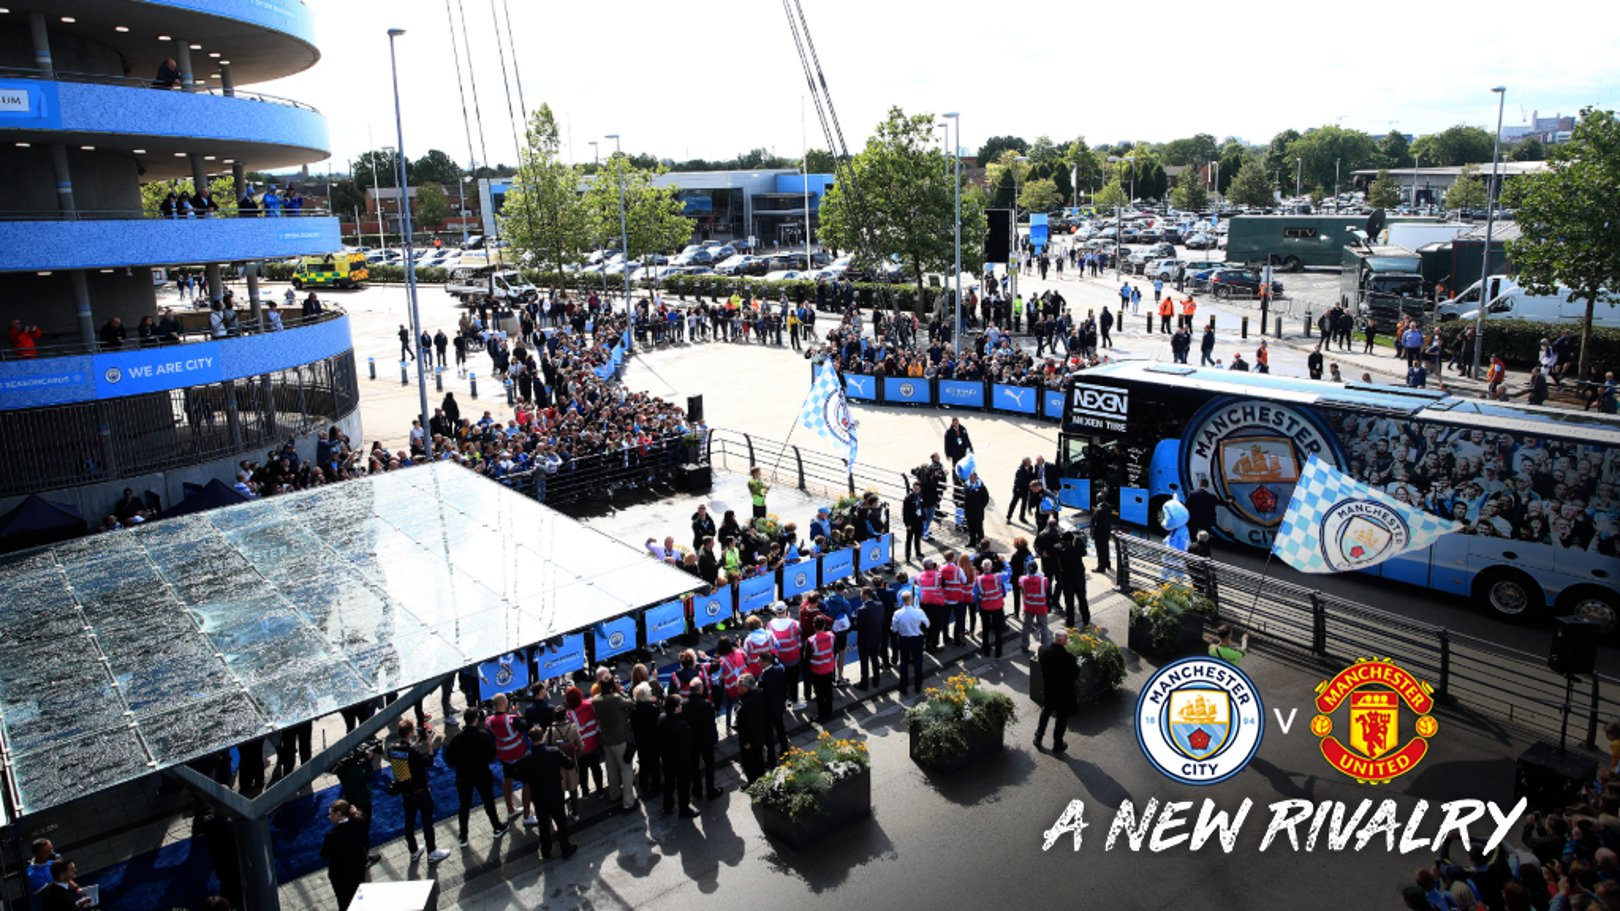 DERBY DAY: Everything you need to know about the first FA WSL Manchester Derby